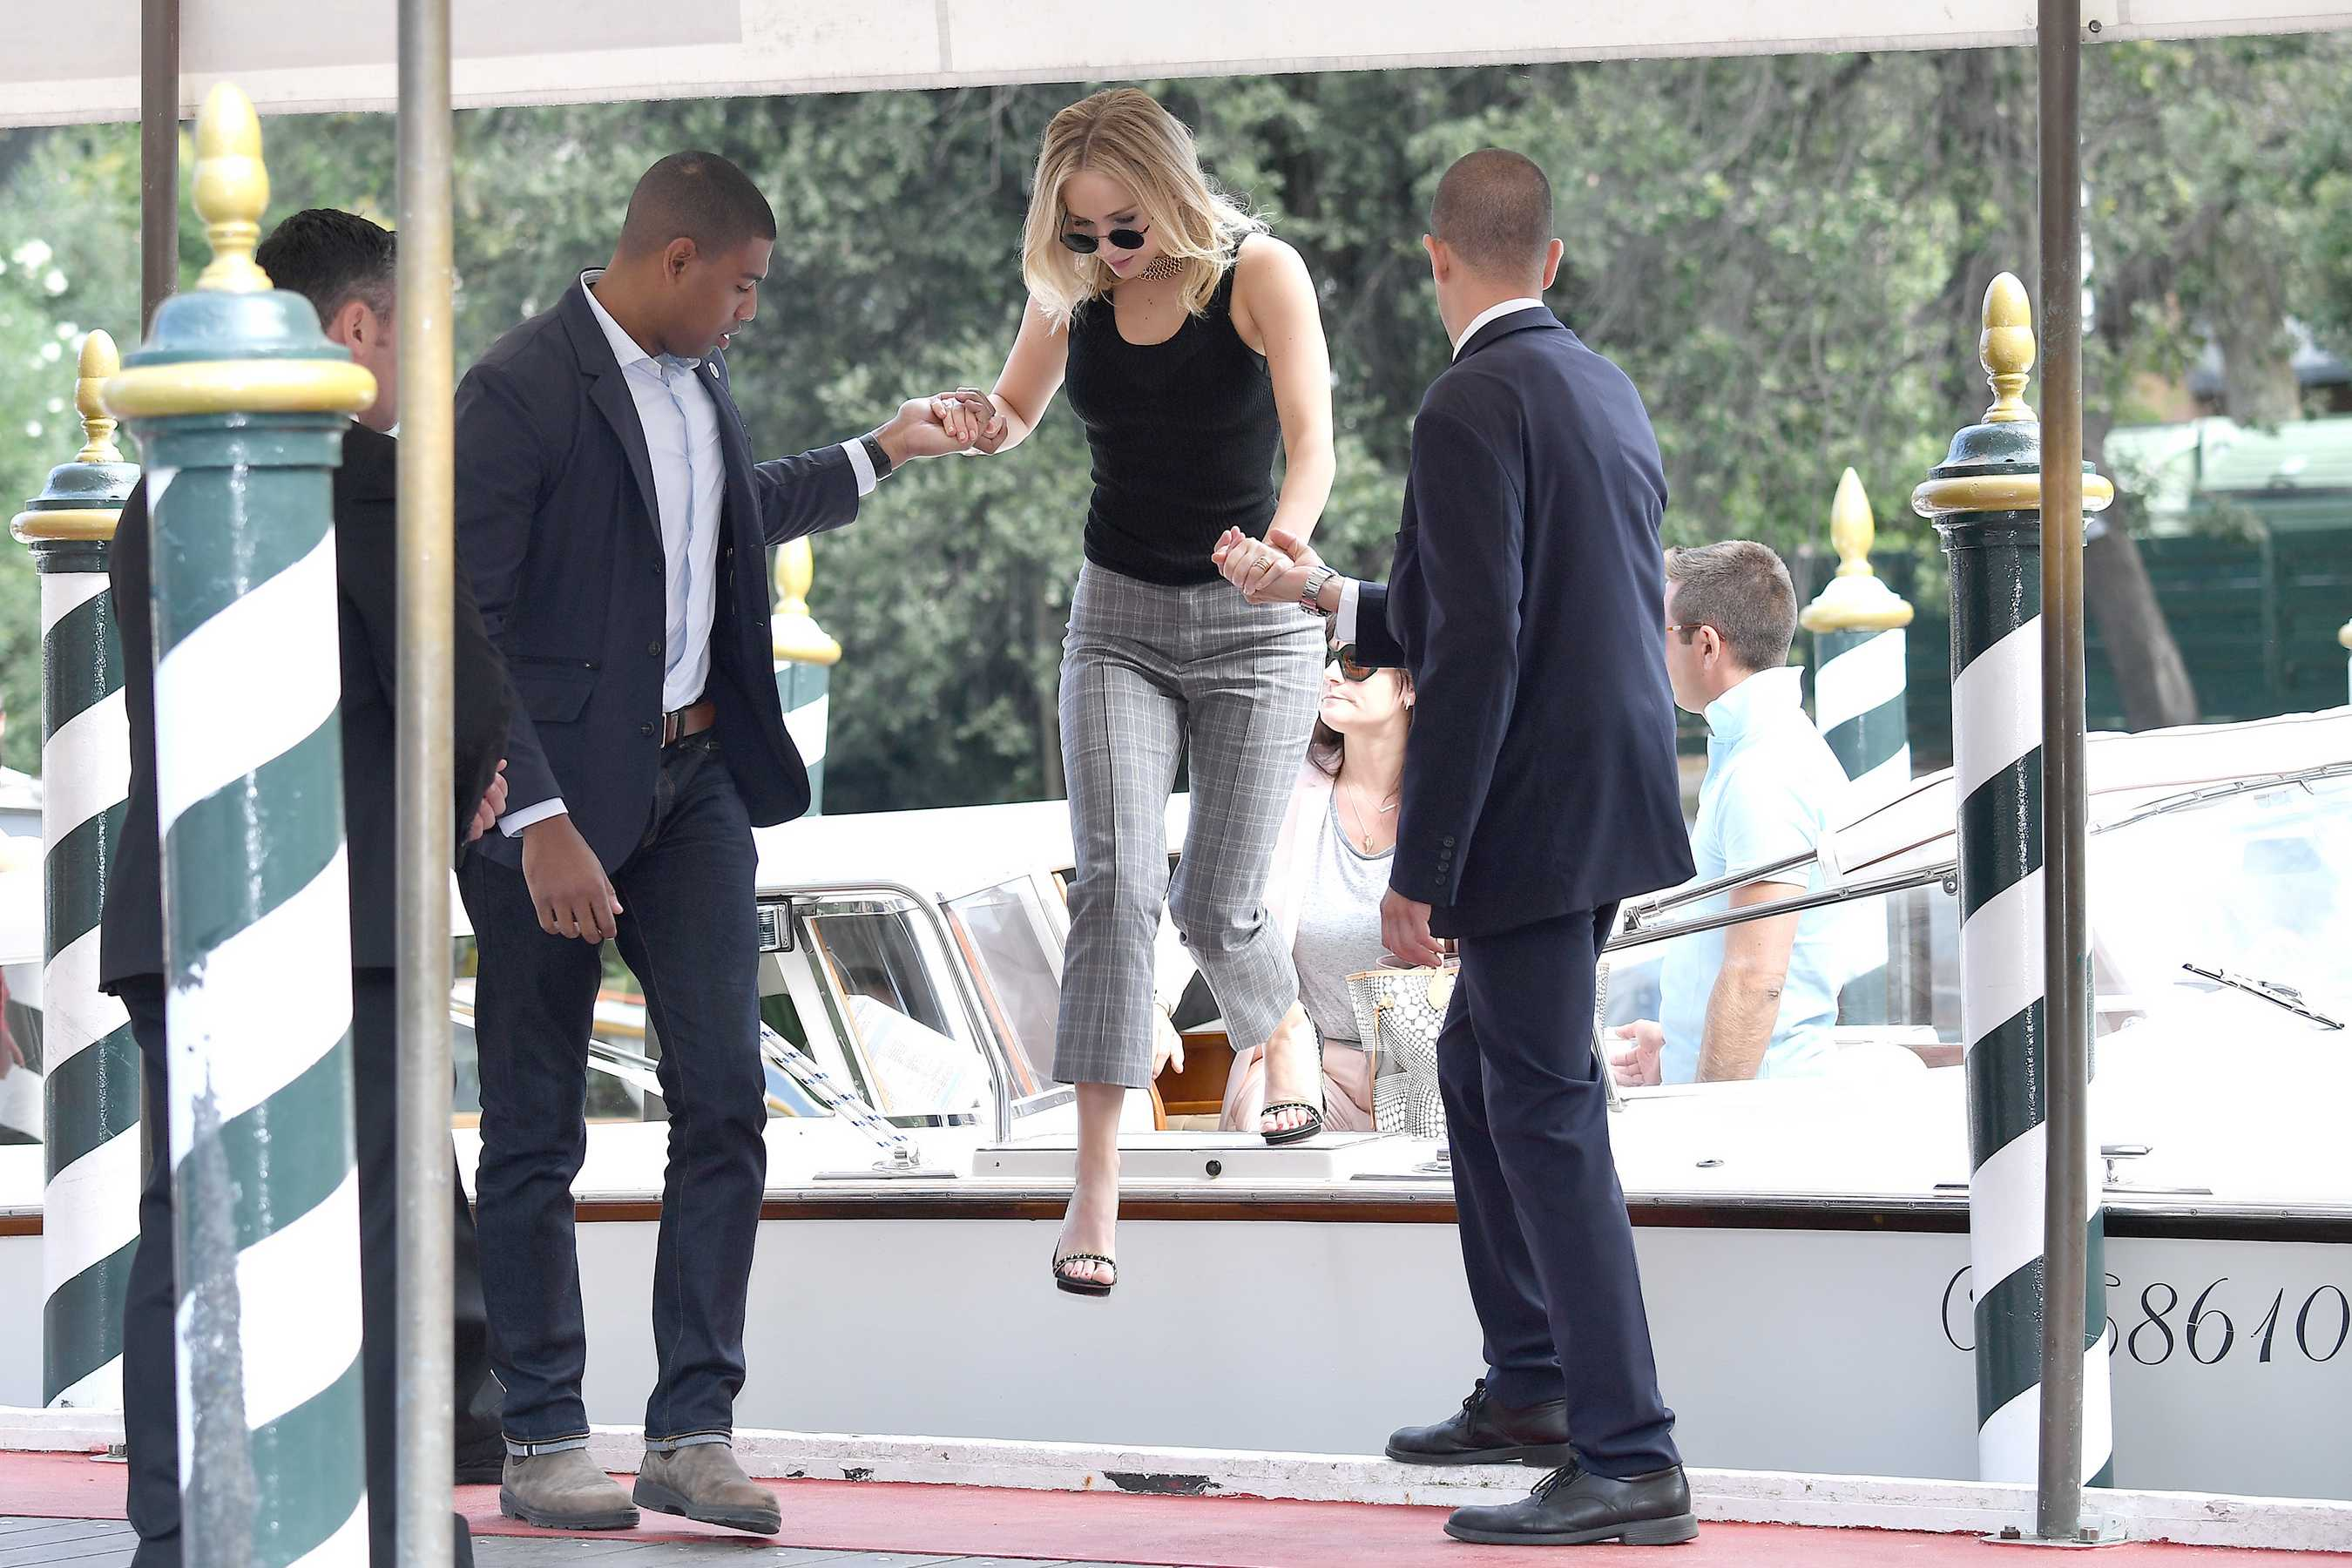 http://jenniferlawrencedaily.com/gallery/albums/userpics/10001/Jennifer_Lawrence_-_Arrives_at_Excelsior_Hotel_during_the_74th_Venice_Film_Festival_in_Italy_on_September_5-11~0.jpg